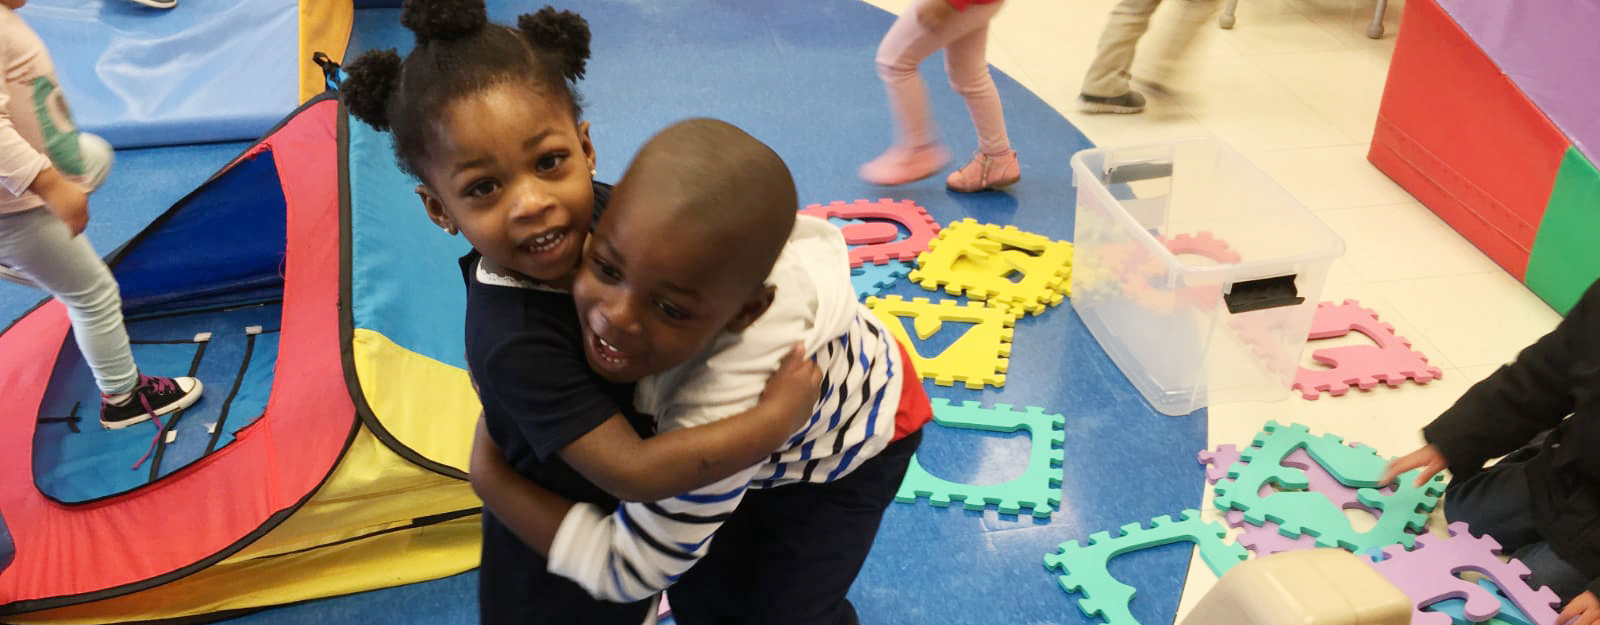 boy and girl hugging in preschool